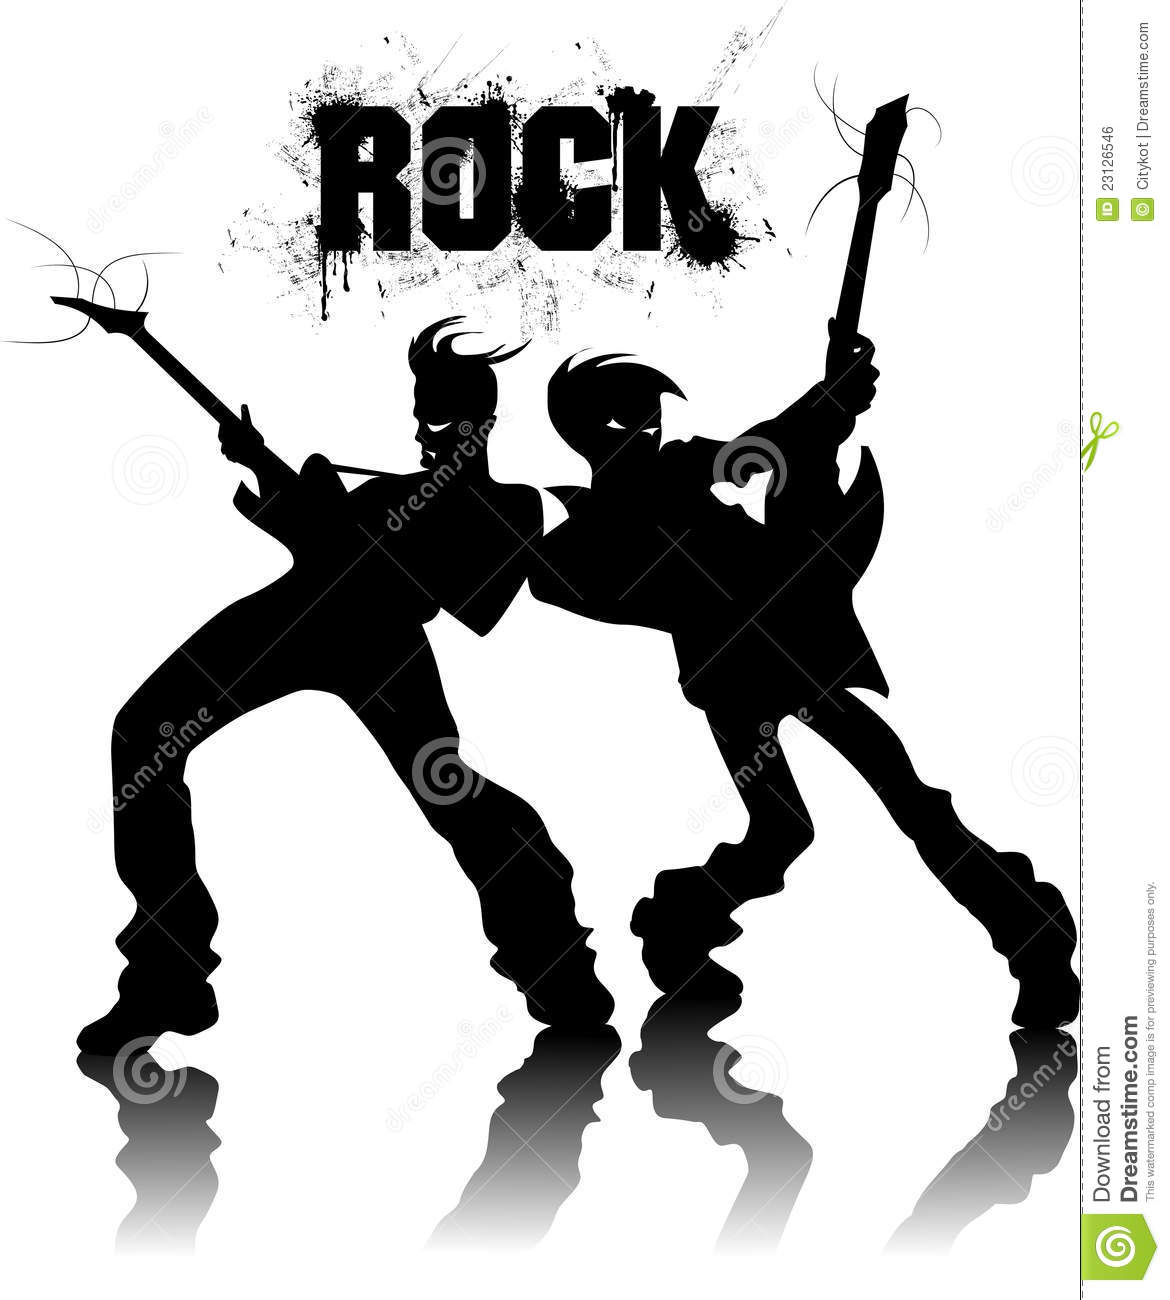 Metal Band Silhouette Metal Band Silhouette Rock Band Silhouette